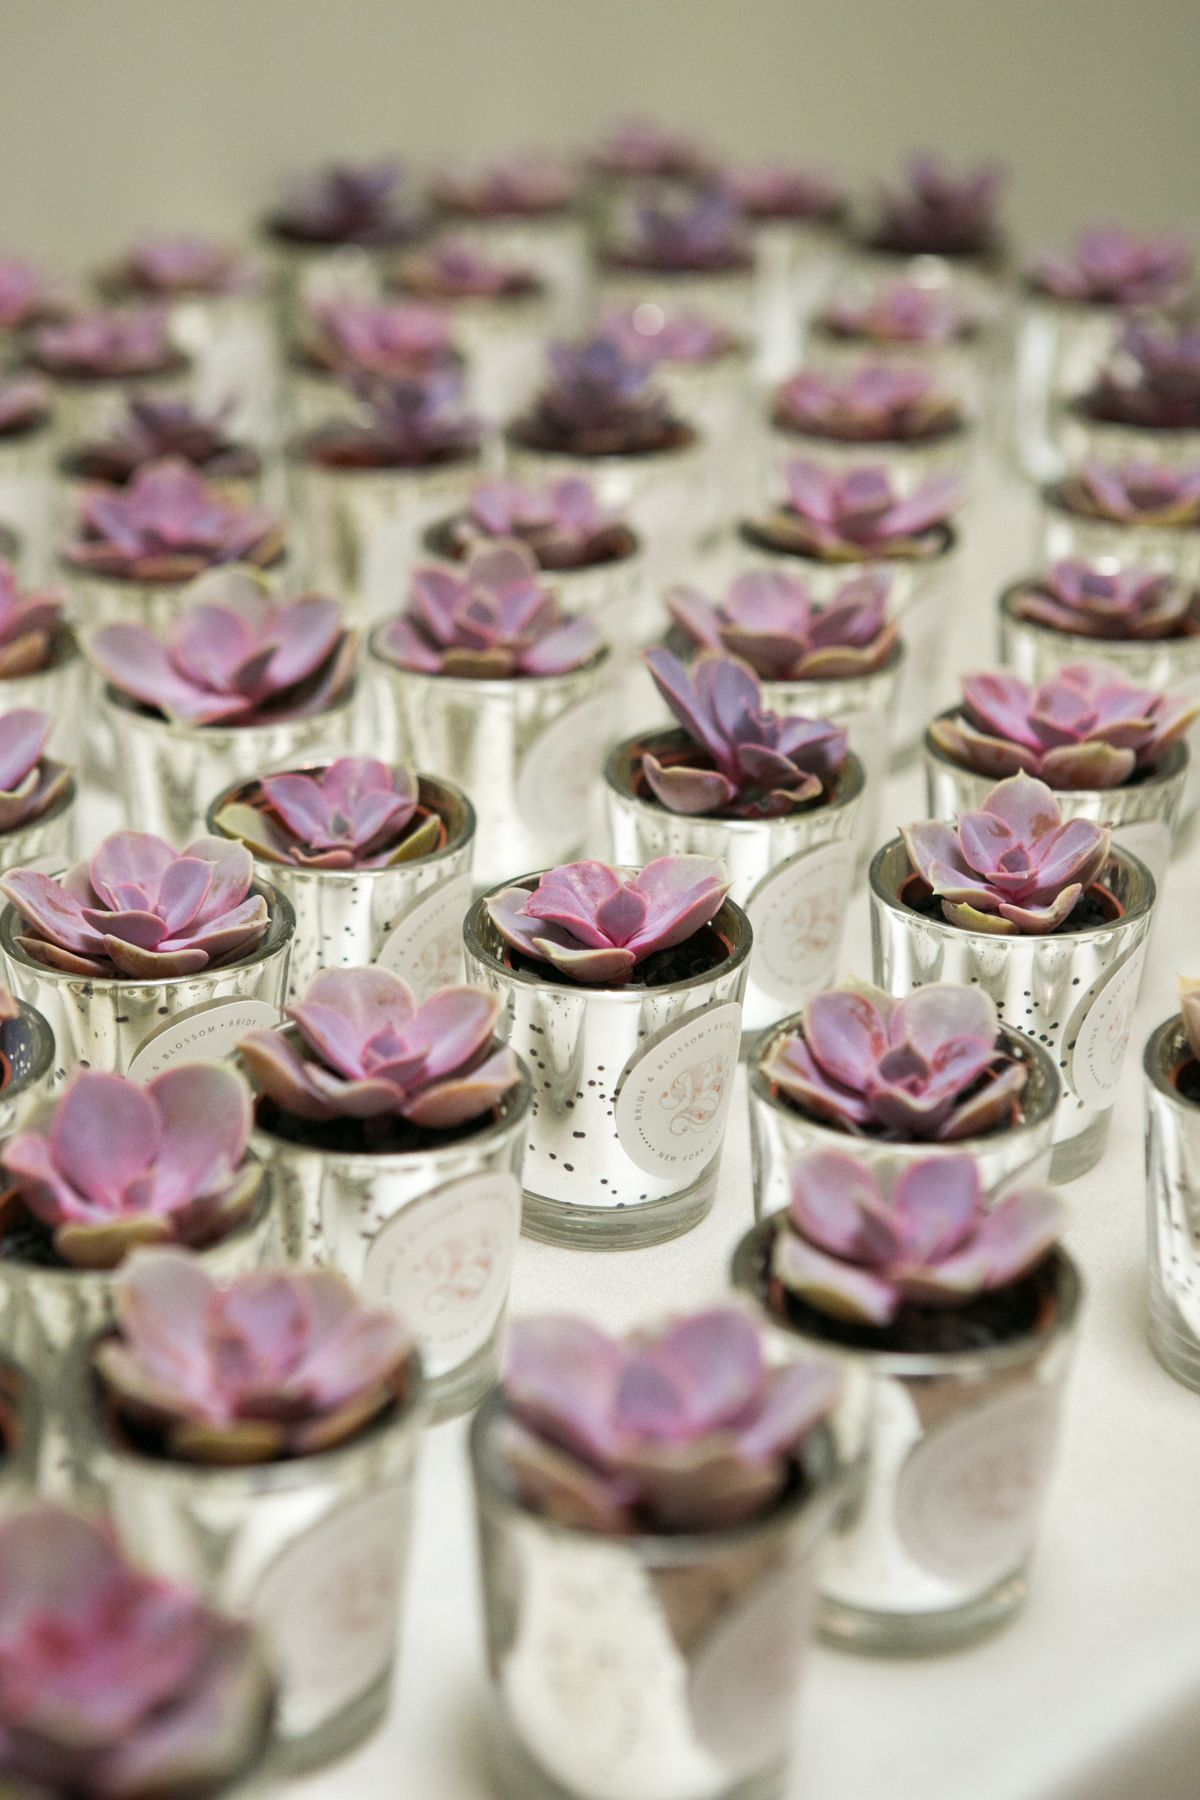 We Love Mini Succulent Party Favors By Bride Amp Blossom Nyc S Only Luxury Wedding Florist